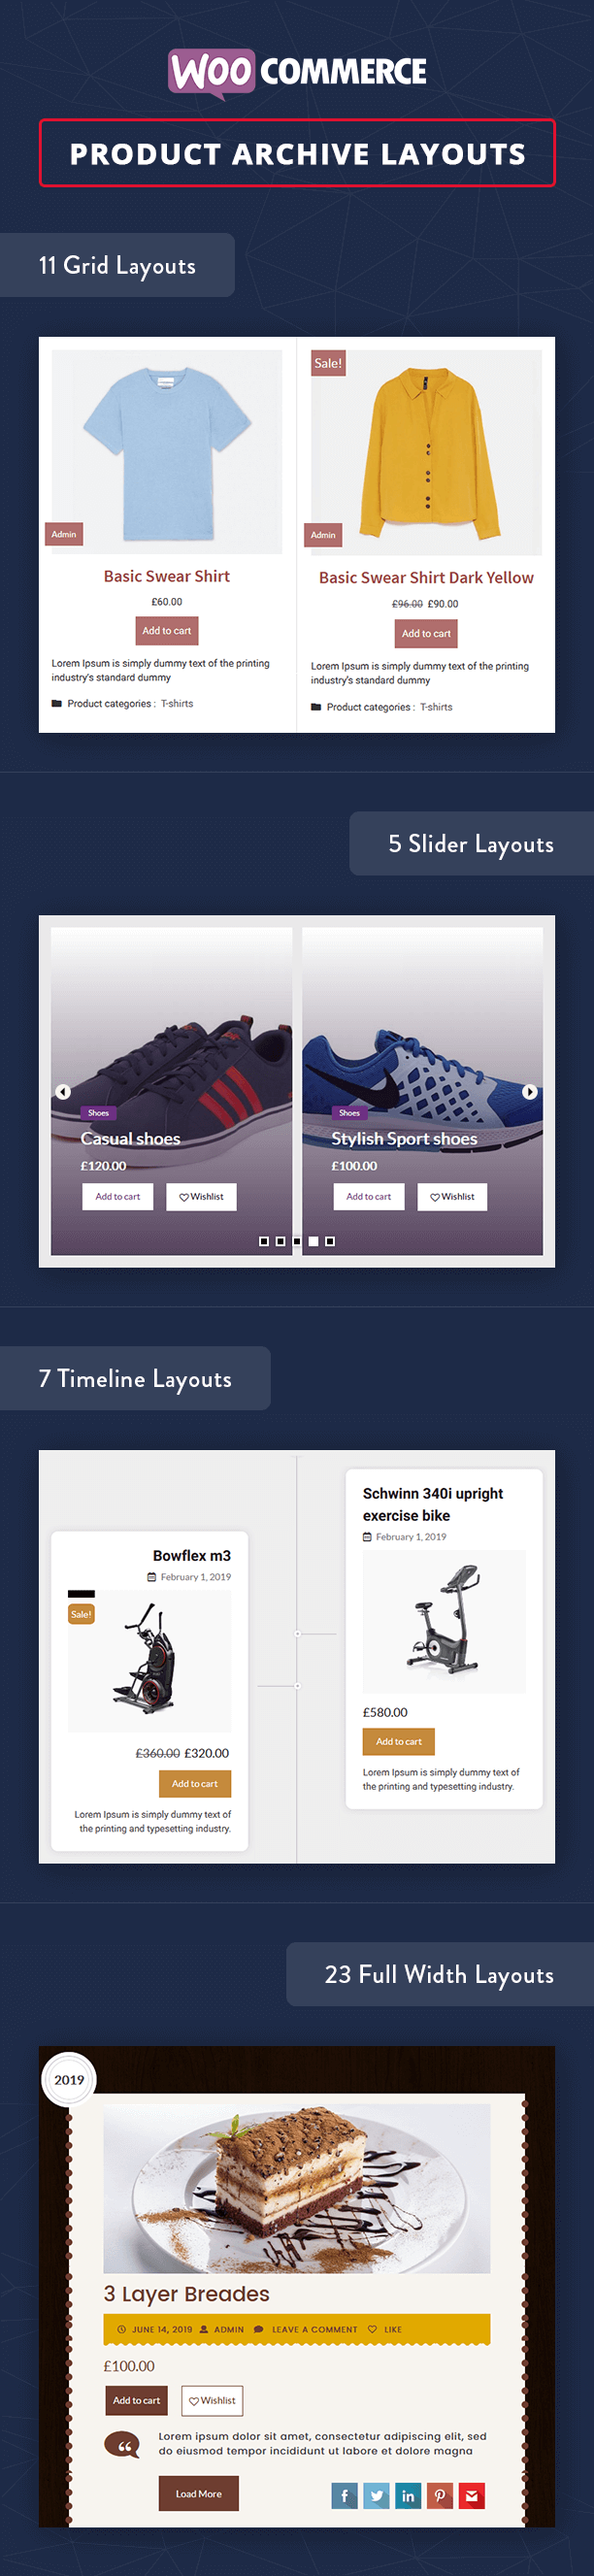 Blog Designer PRO WooCommerce archive page layouts